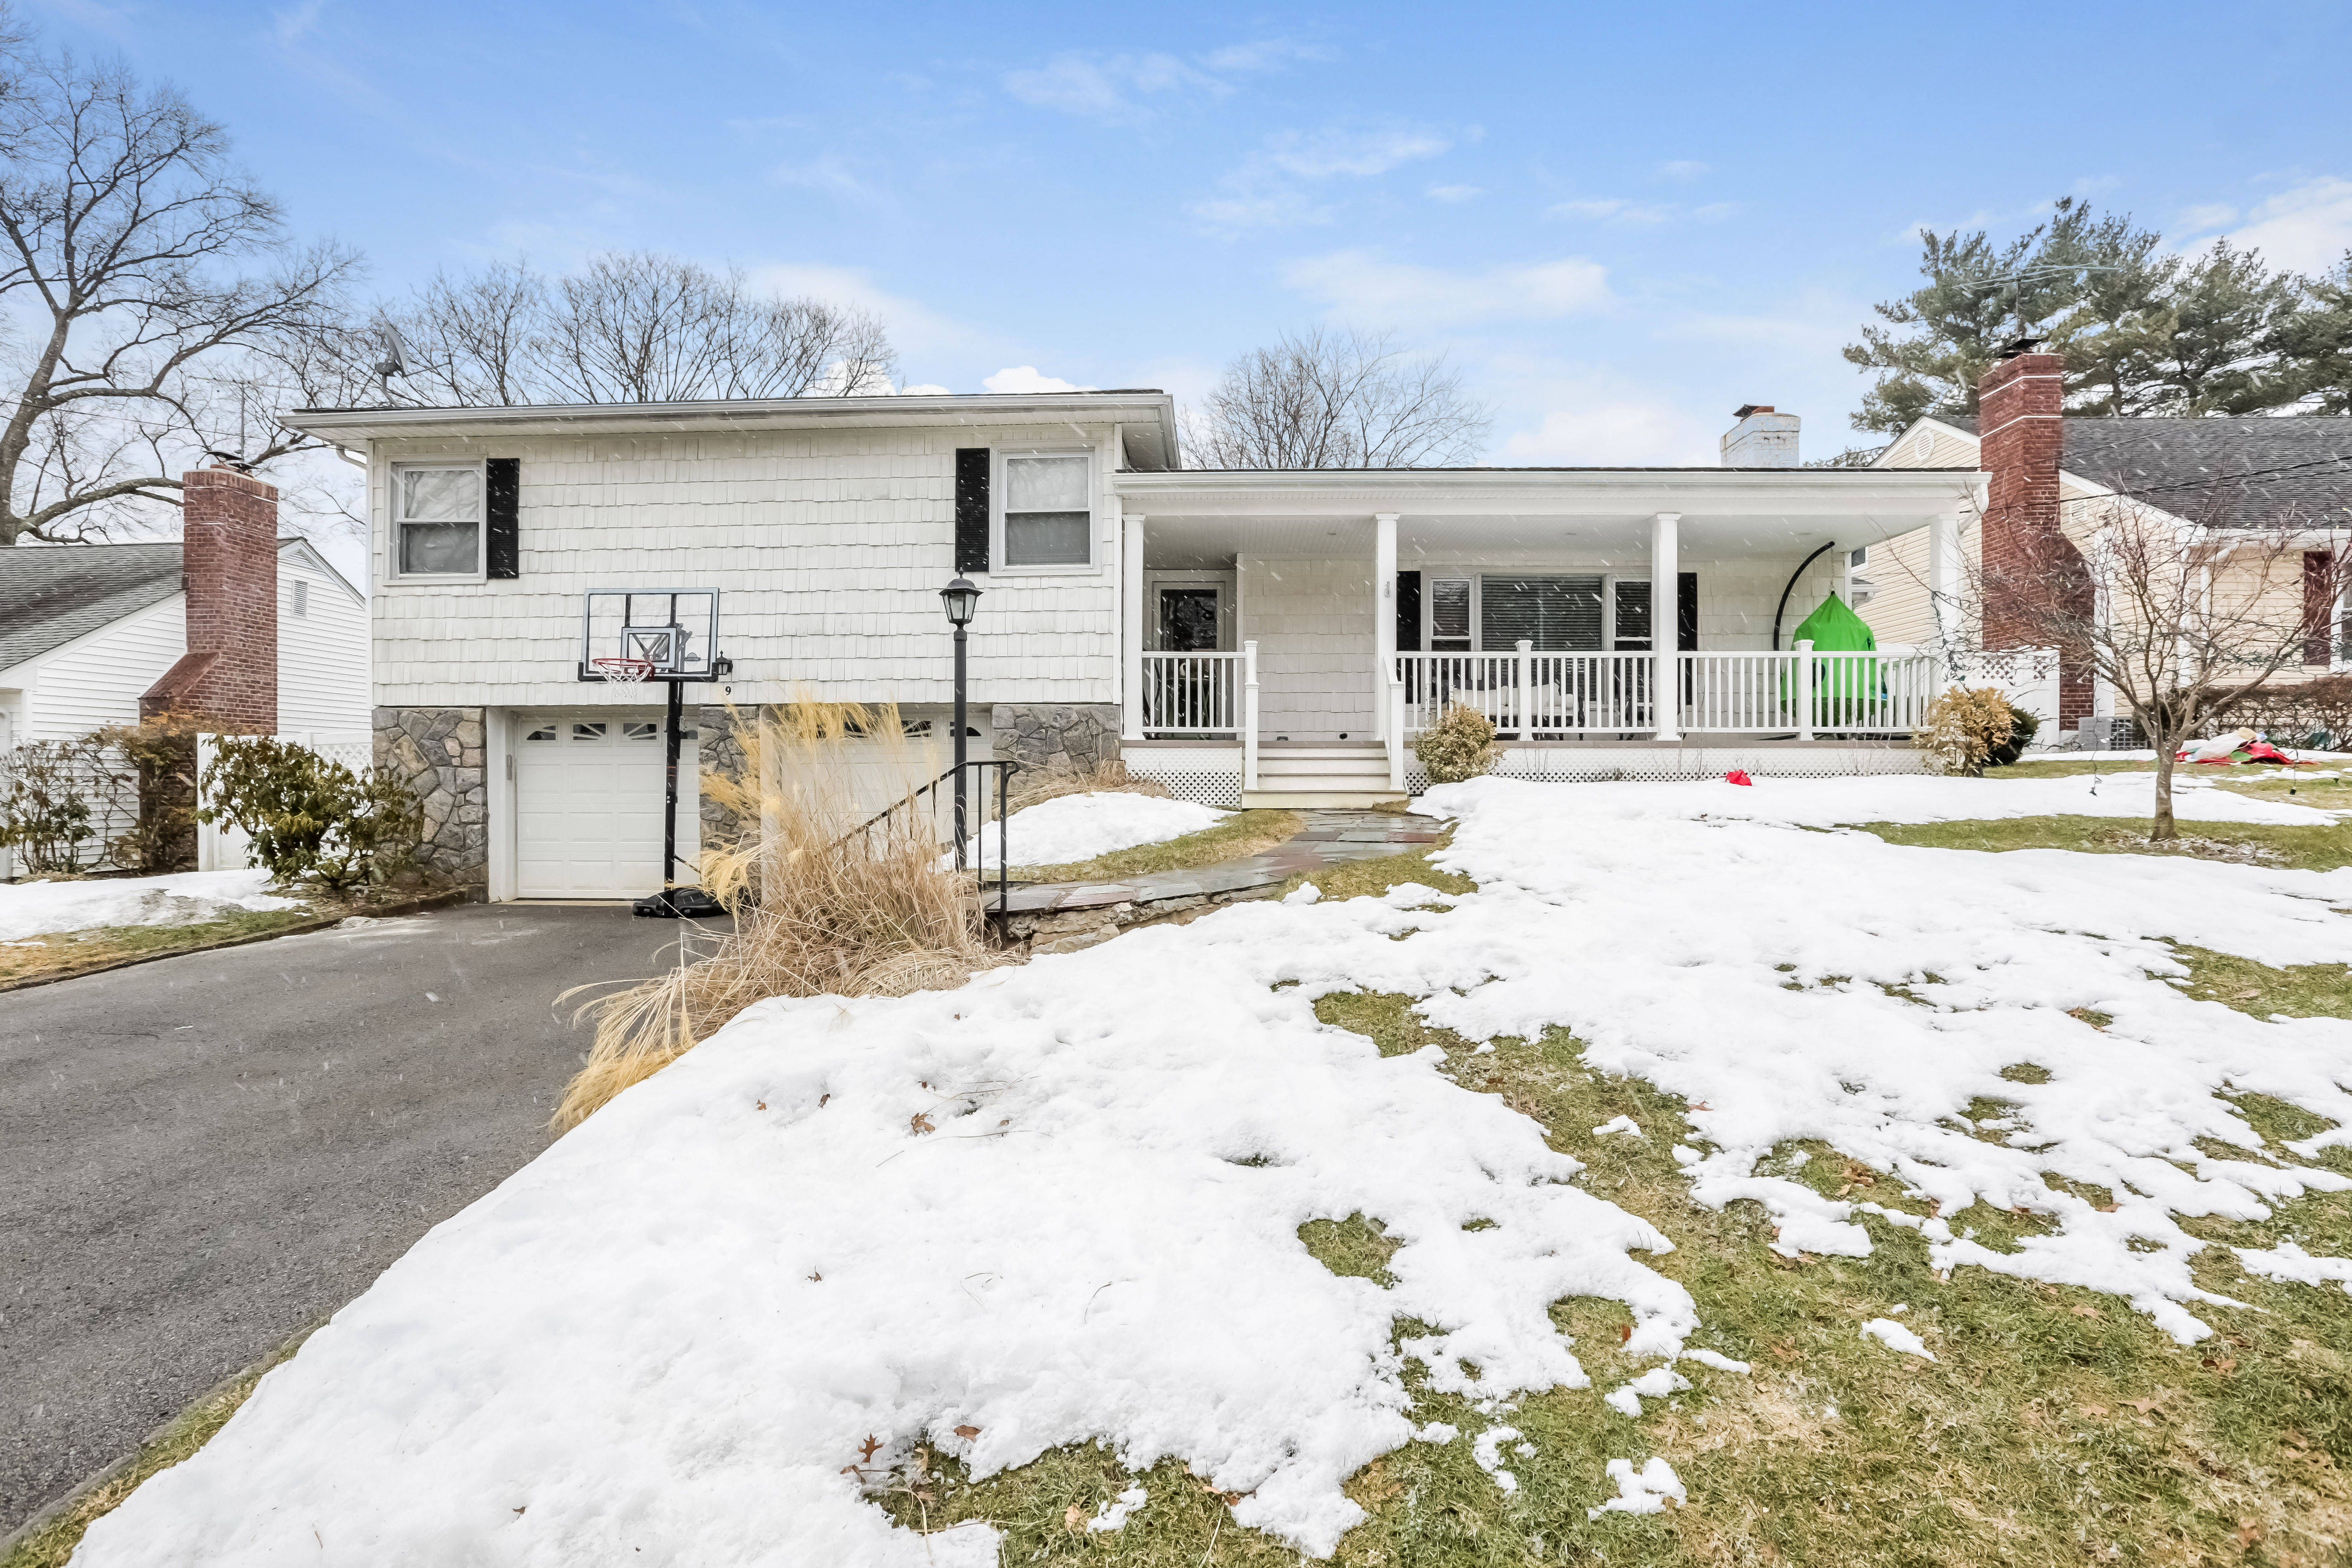 Single Family Home for Sale at Modern Living With Open Concept 9 Michael Drive Scarsdale, New York 10583 United States